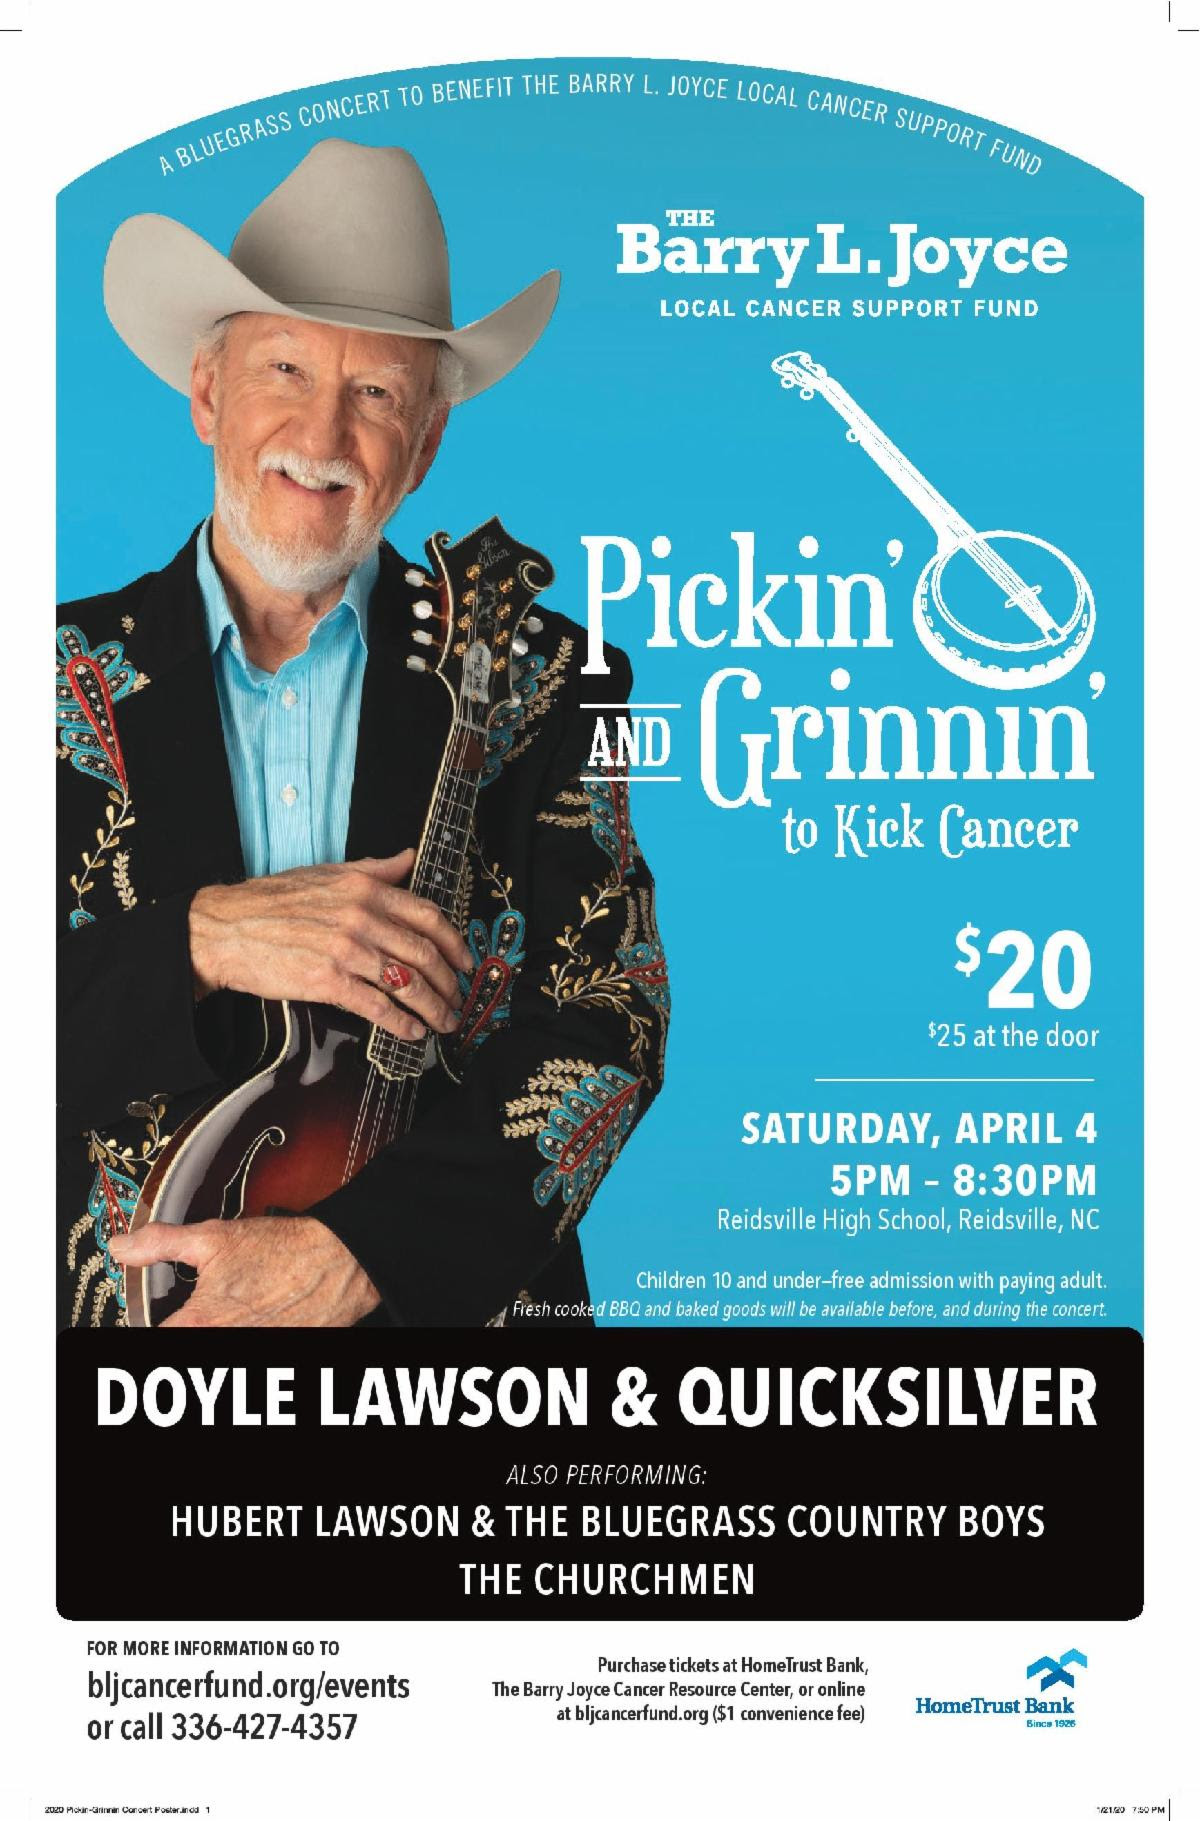 "Pickin' and Grinnin"" To Kick Cancer"